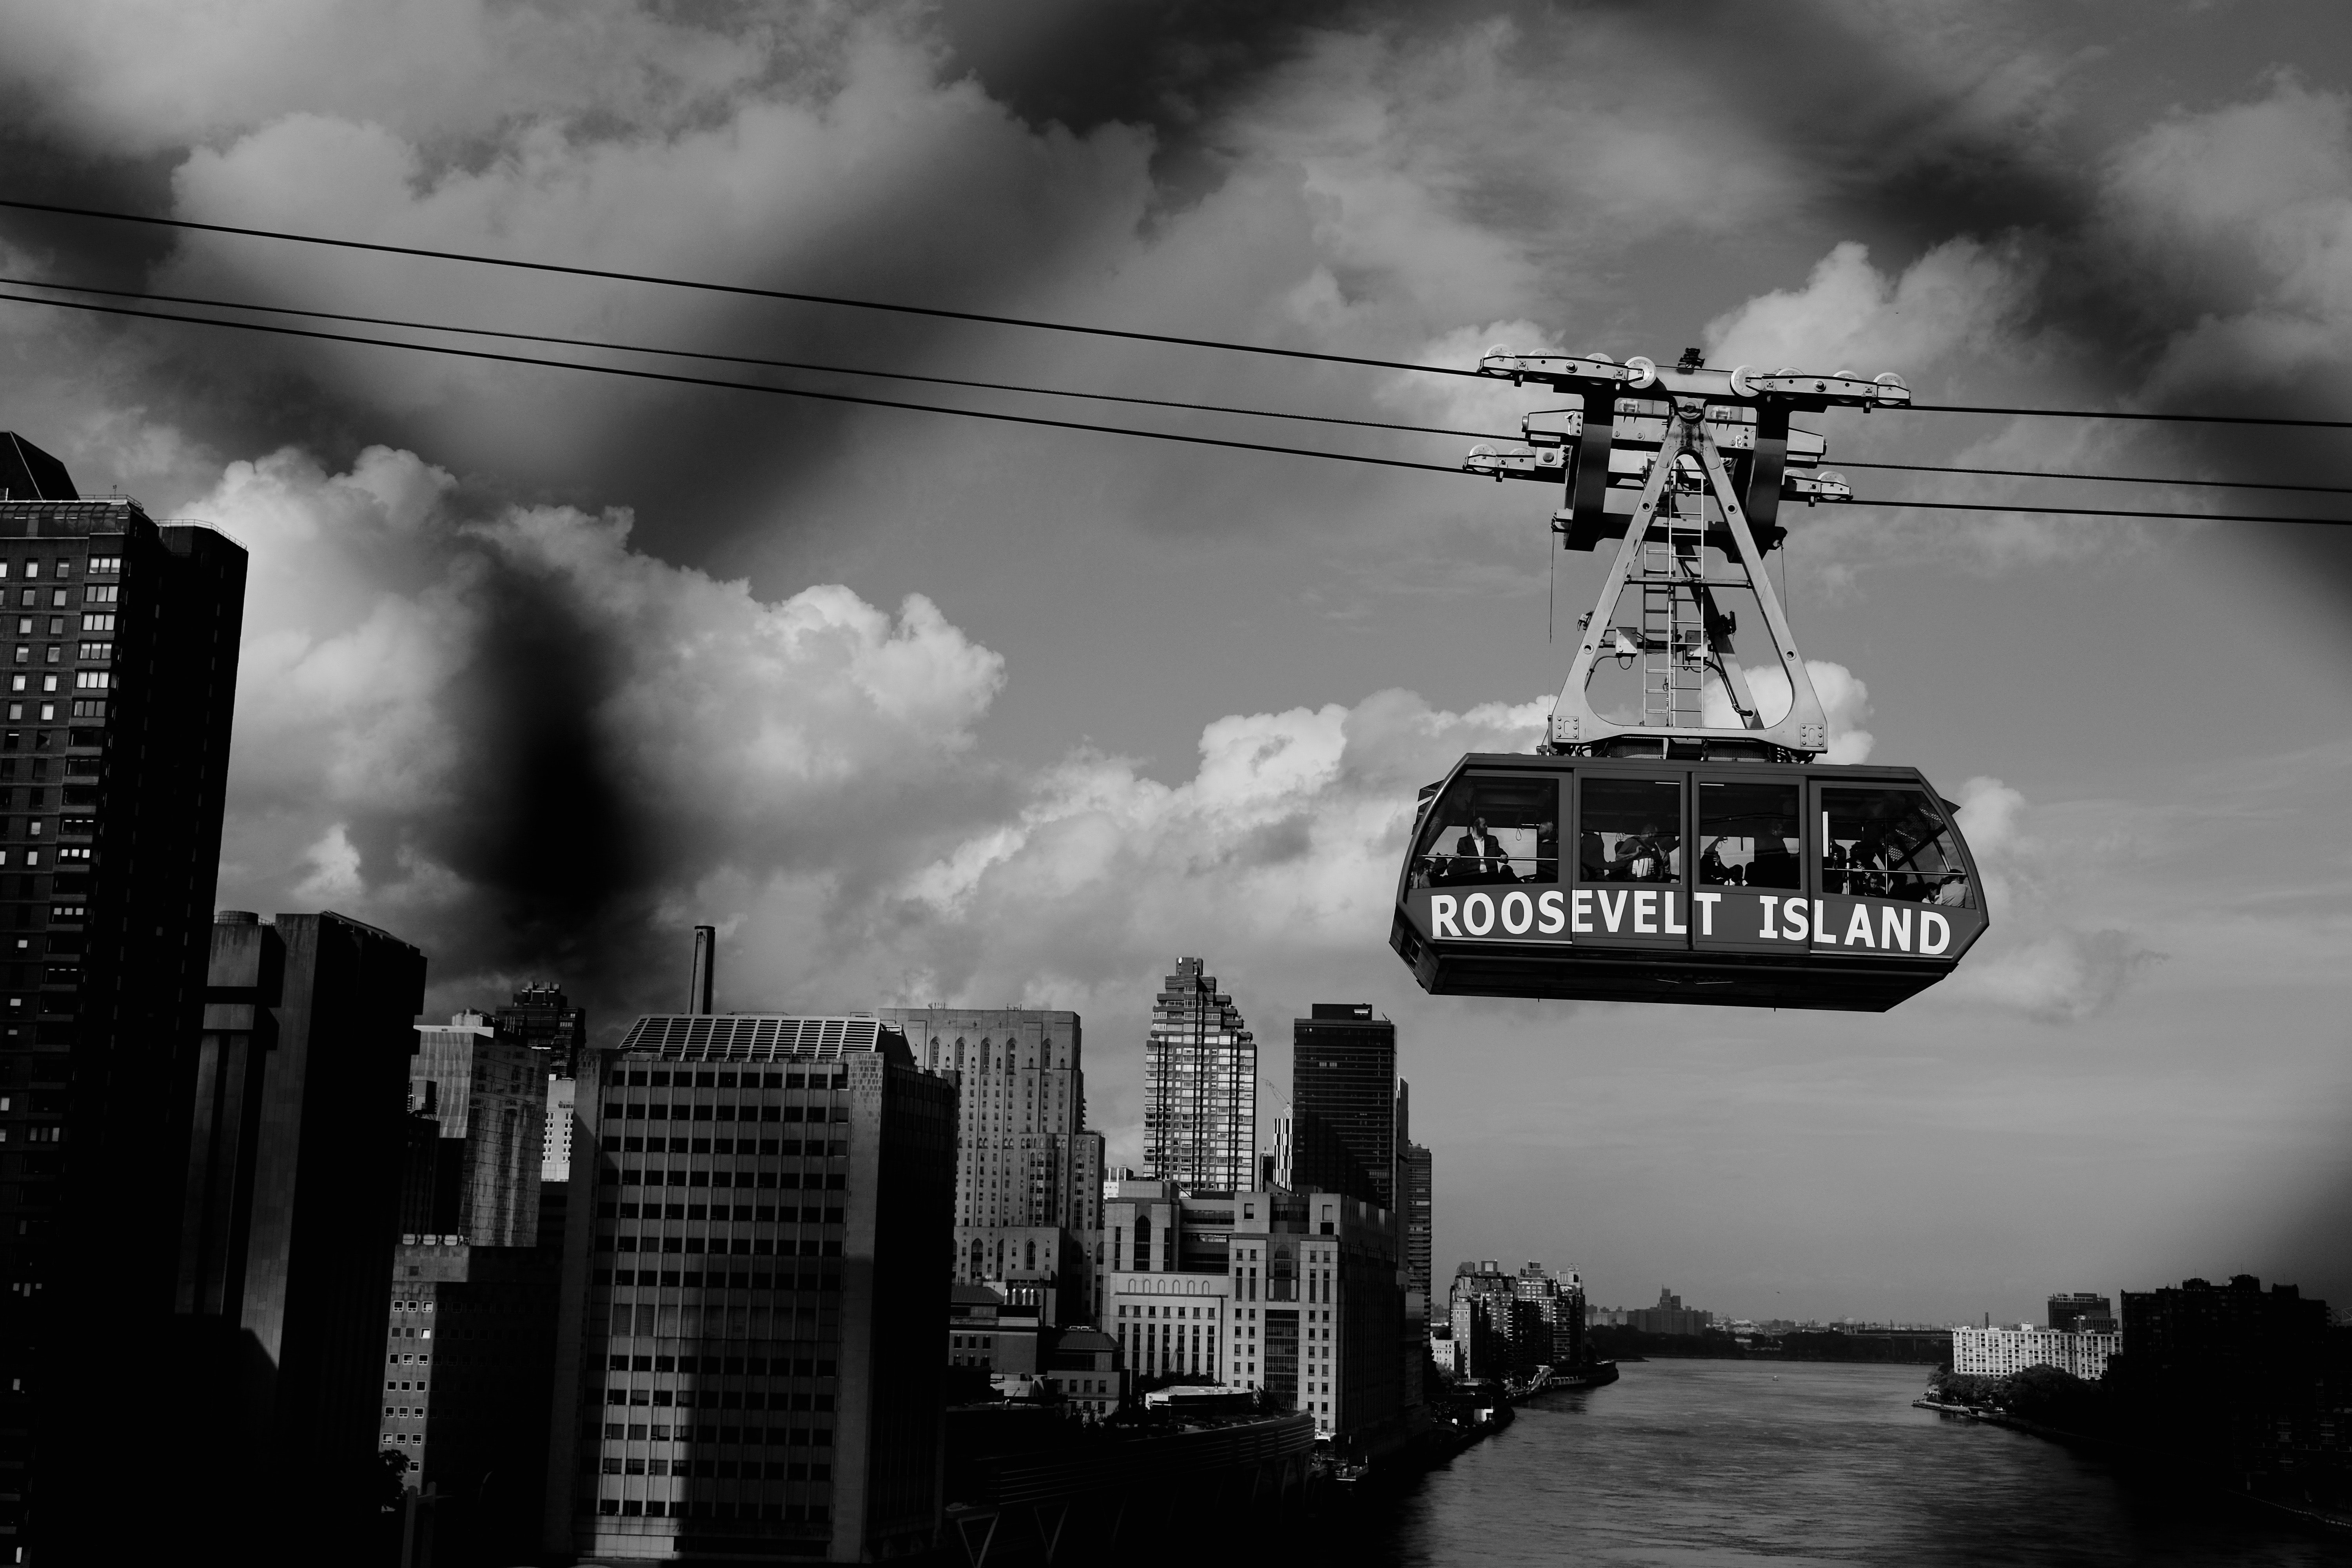 Roosevelt Island cable car on cable greyscale photography during daytime